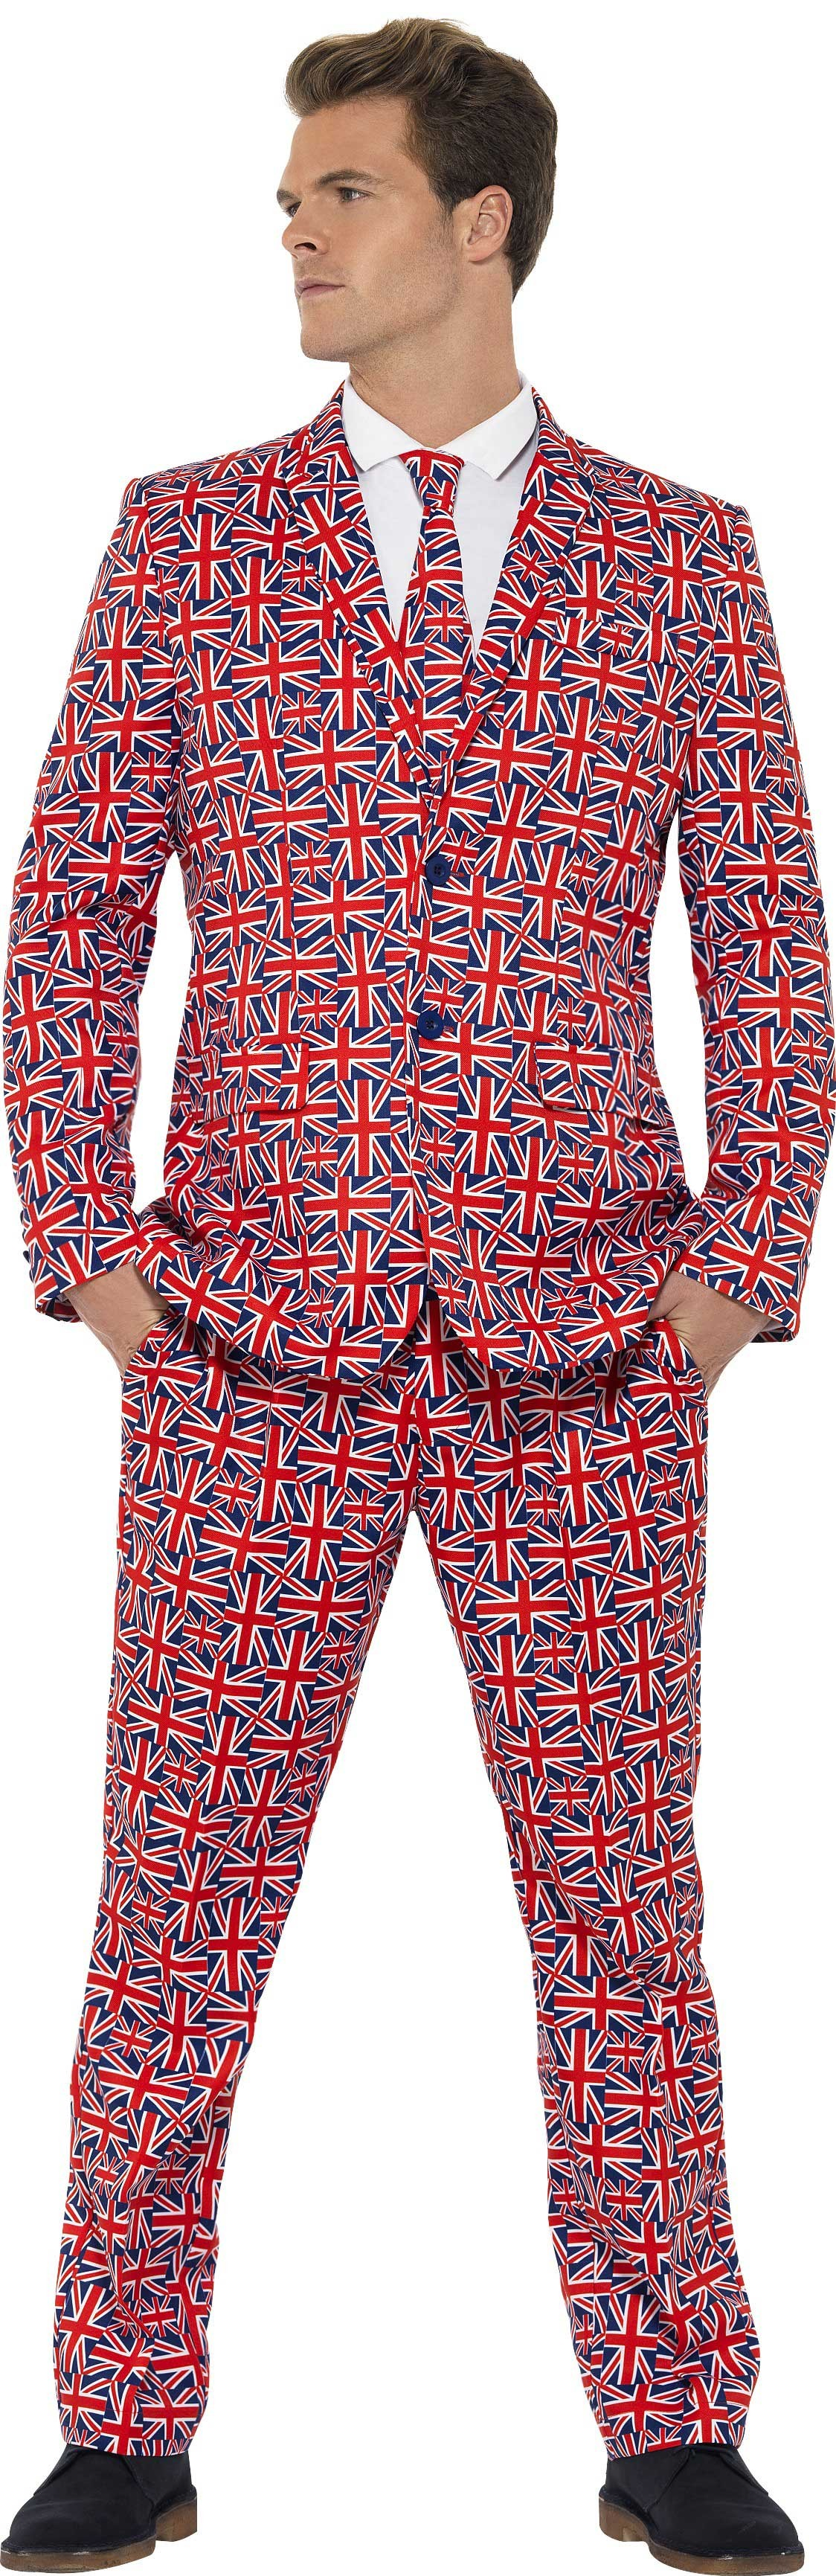 Men'S Union Jack Stand Out Suit Fancy Dress Costume